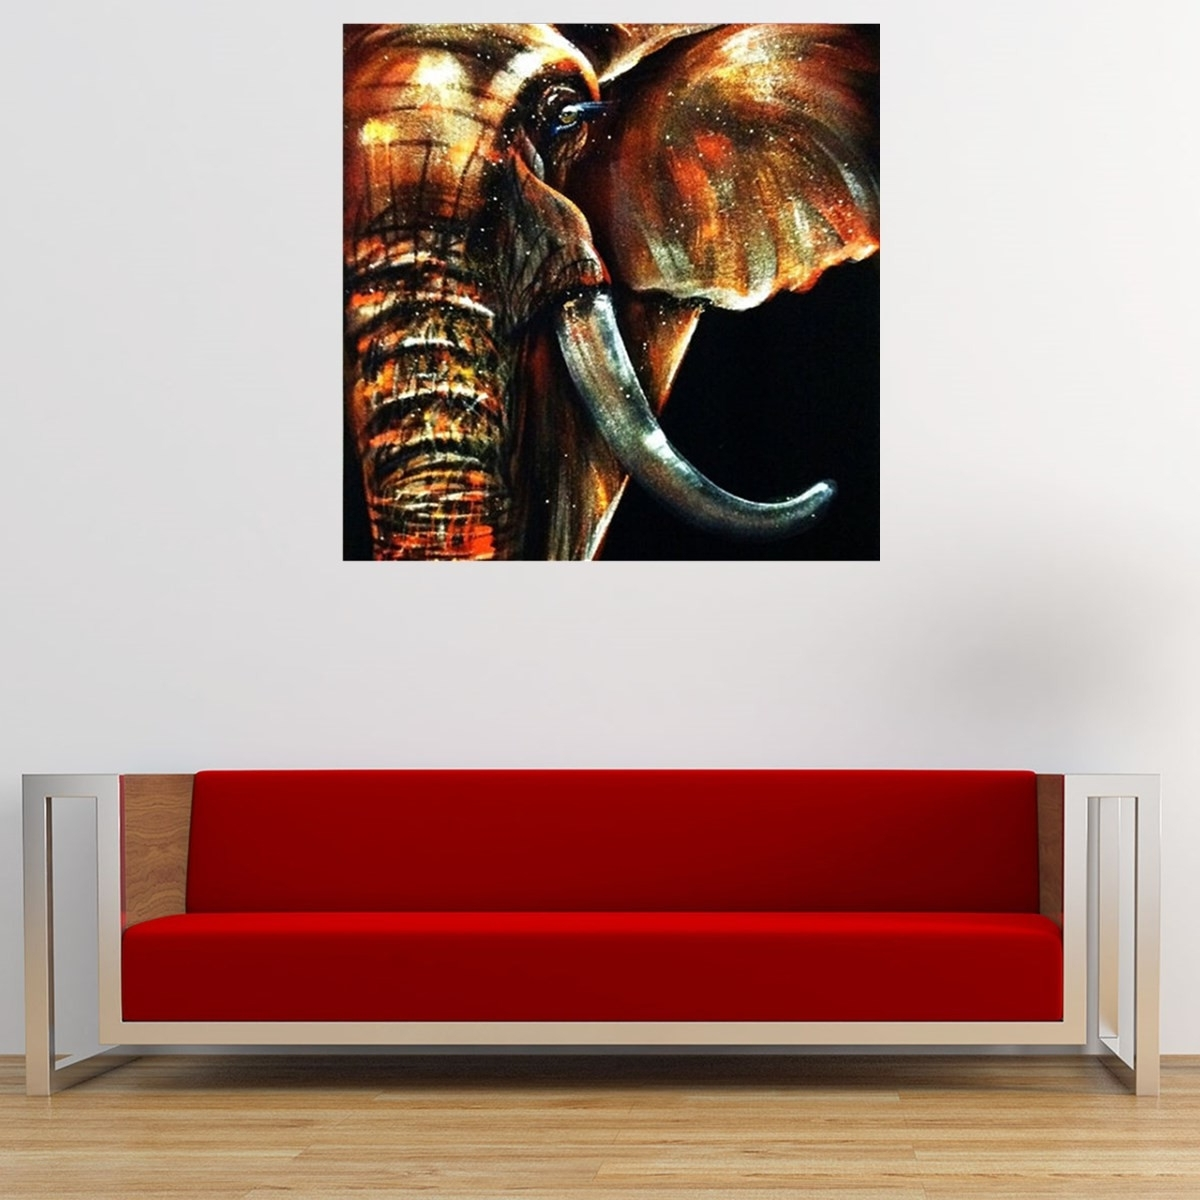 50X50Cm Modern Abstract Huge Elephant Wall Art Decor Oil Painting On Regarding Recent Elephant Wall Art (View 2 of 15)